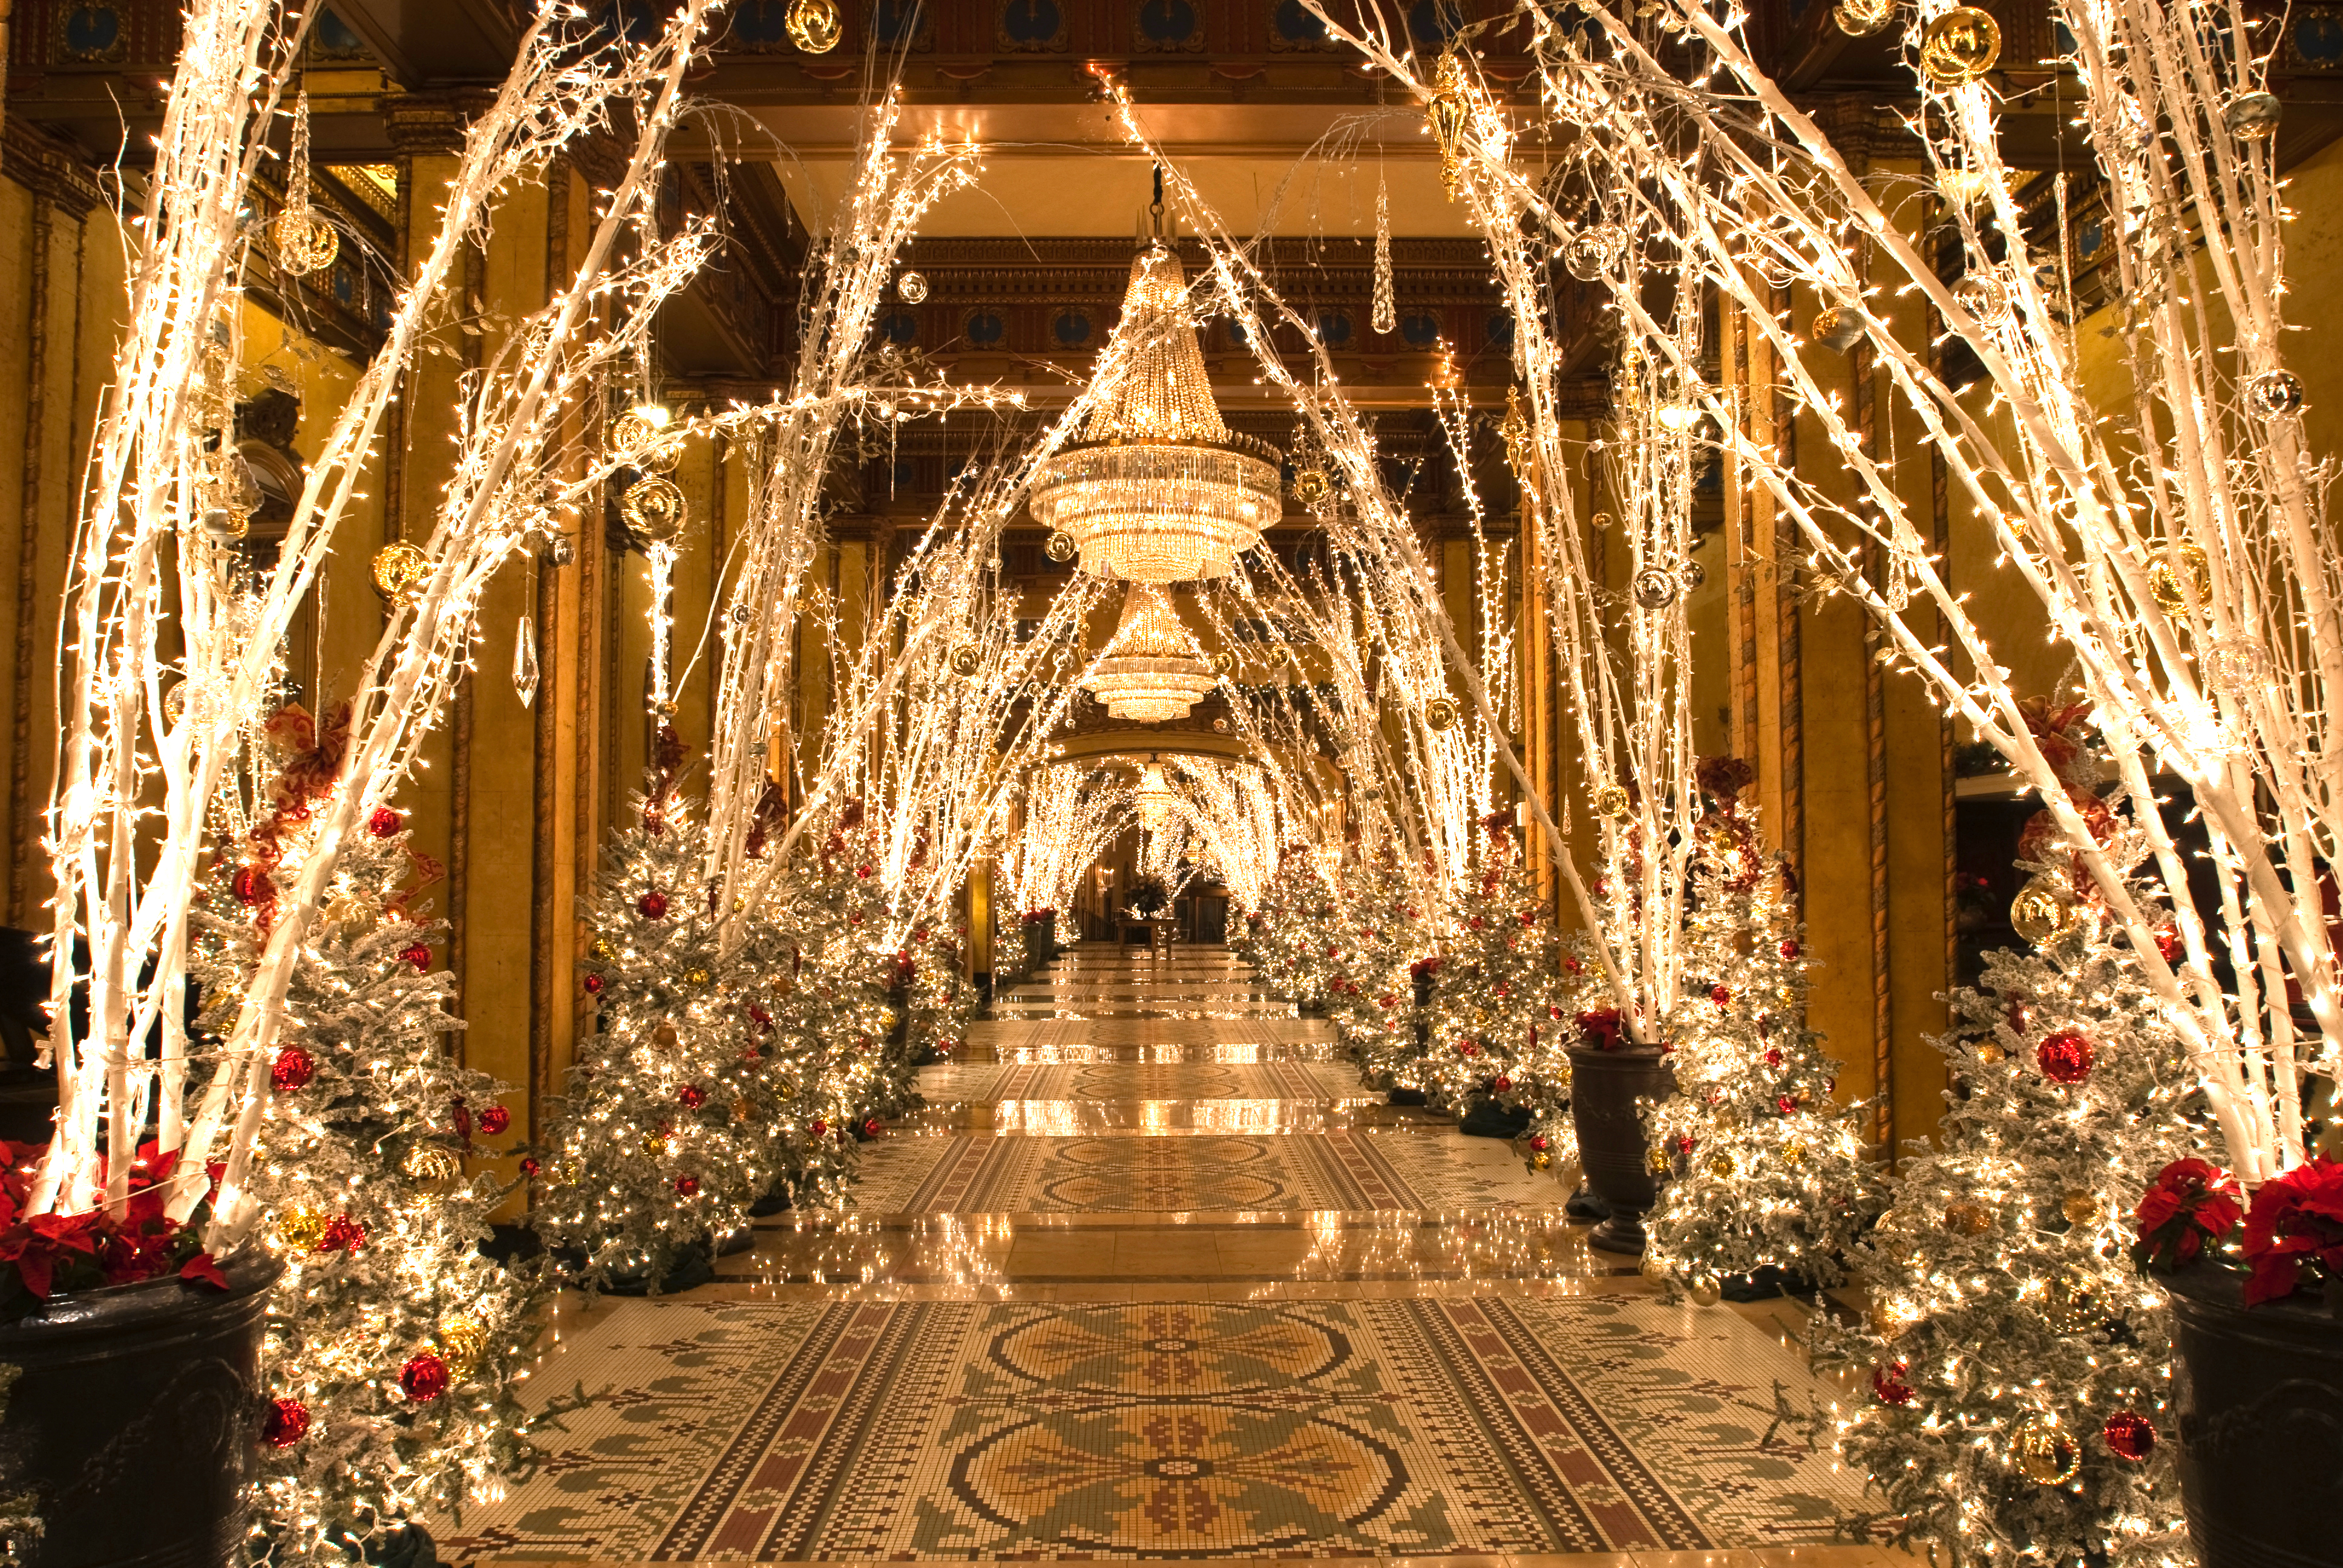 The interior of the Roosevelt in New Orleans. The hallway has tree branches with white holiday lights on both sides. There are multiple chandeliers hanging.